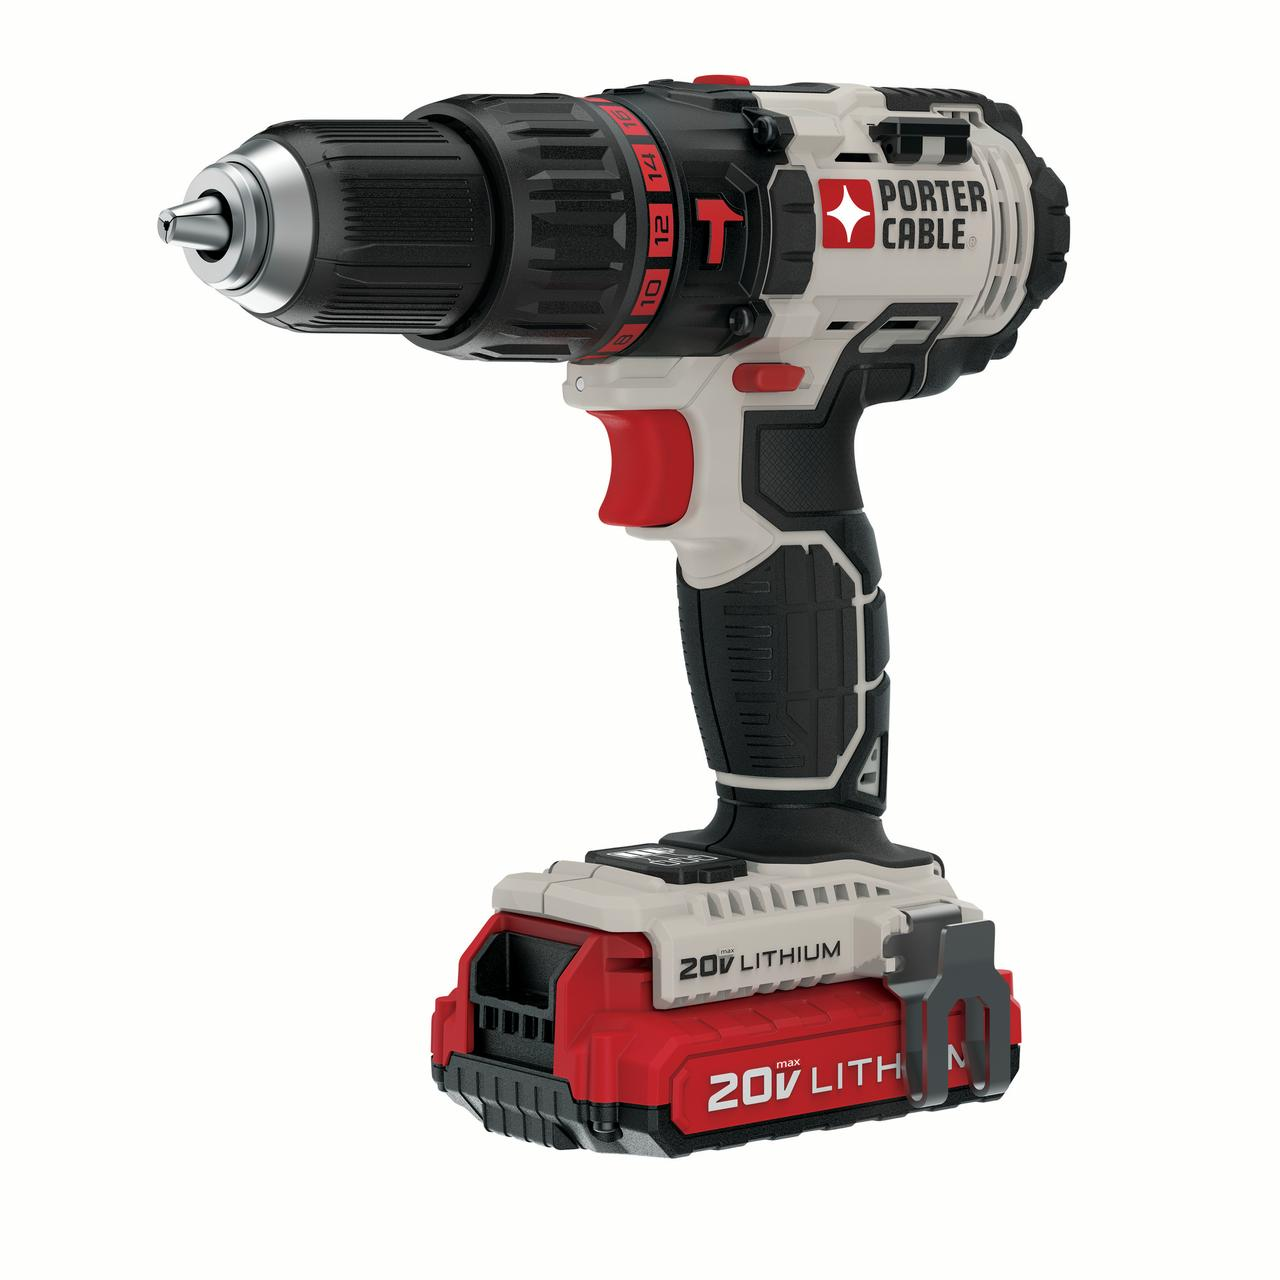 PORTER CABLE PCC620LB 20V MAX Lithium-Ion Cordless 1/2-Inch Hammer Drill Kit